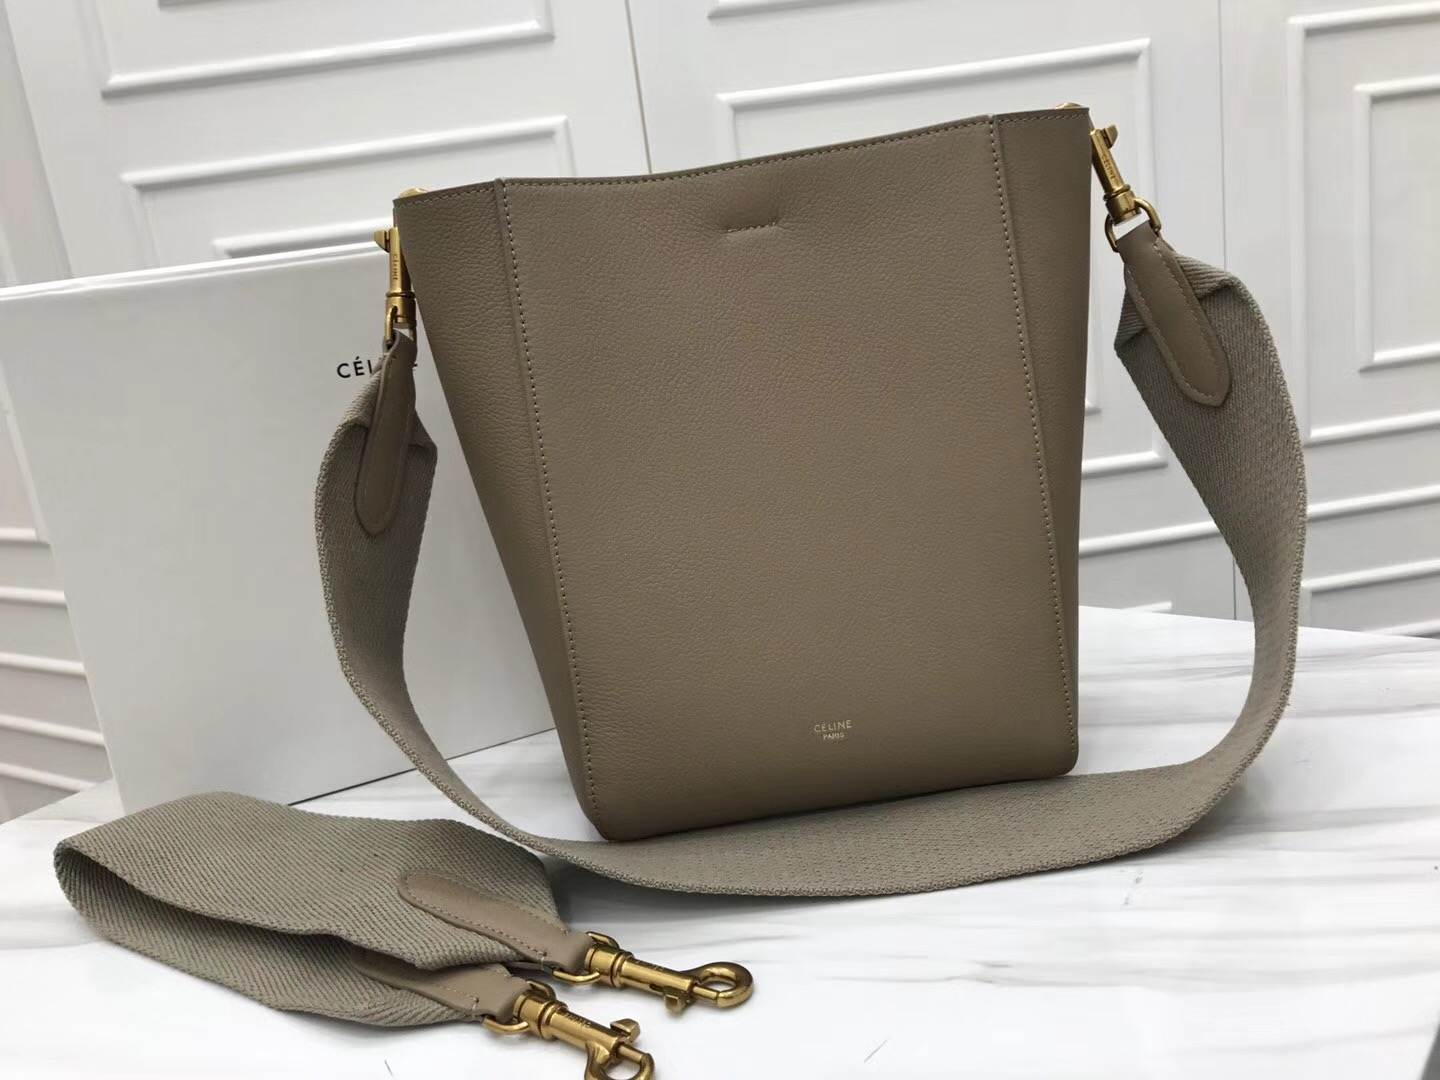 Celine Calfskin Leather Shoulder Bag 5530 grey